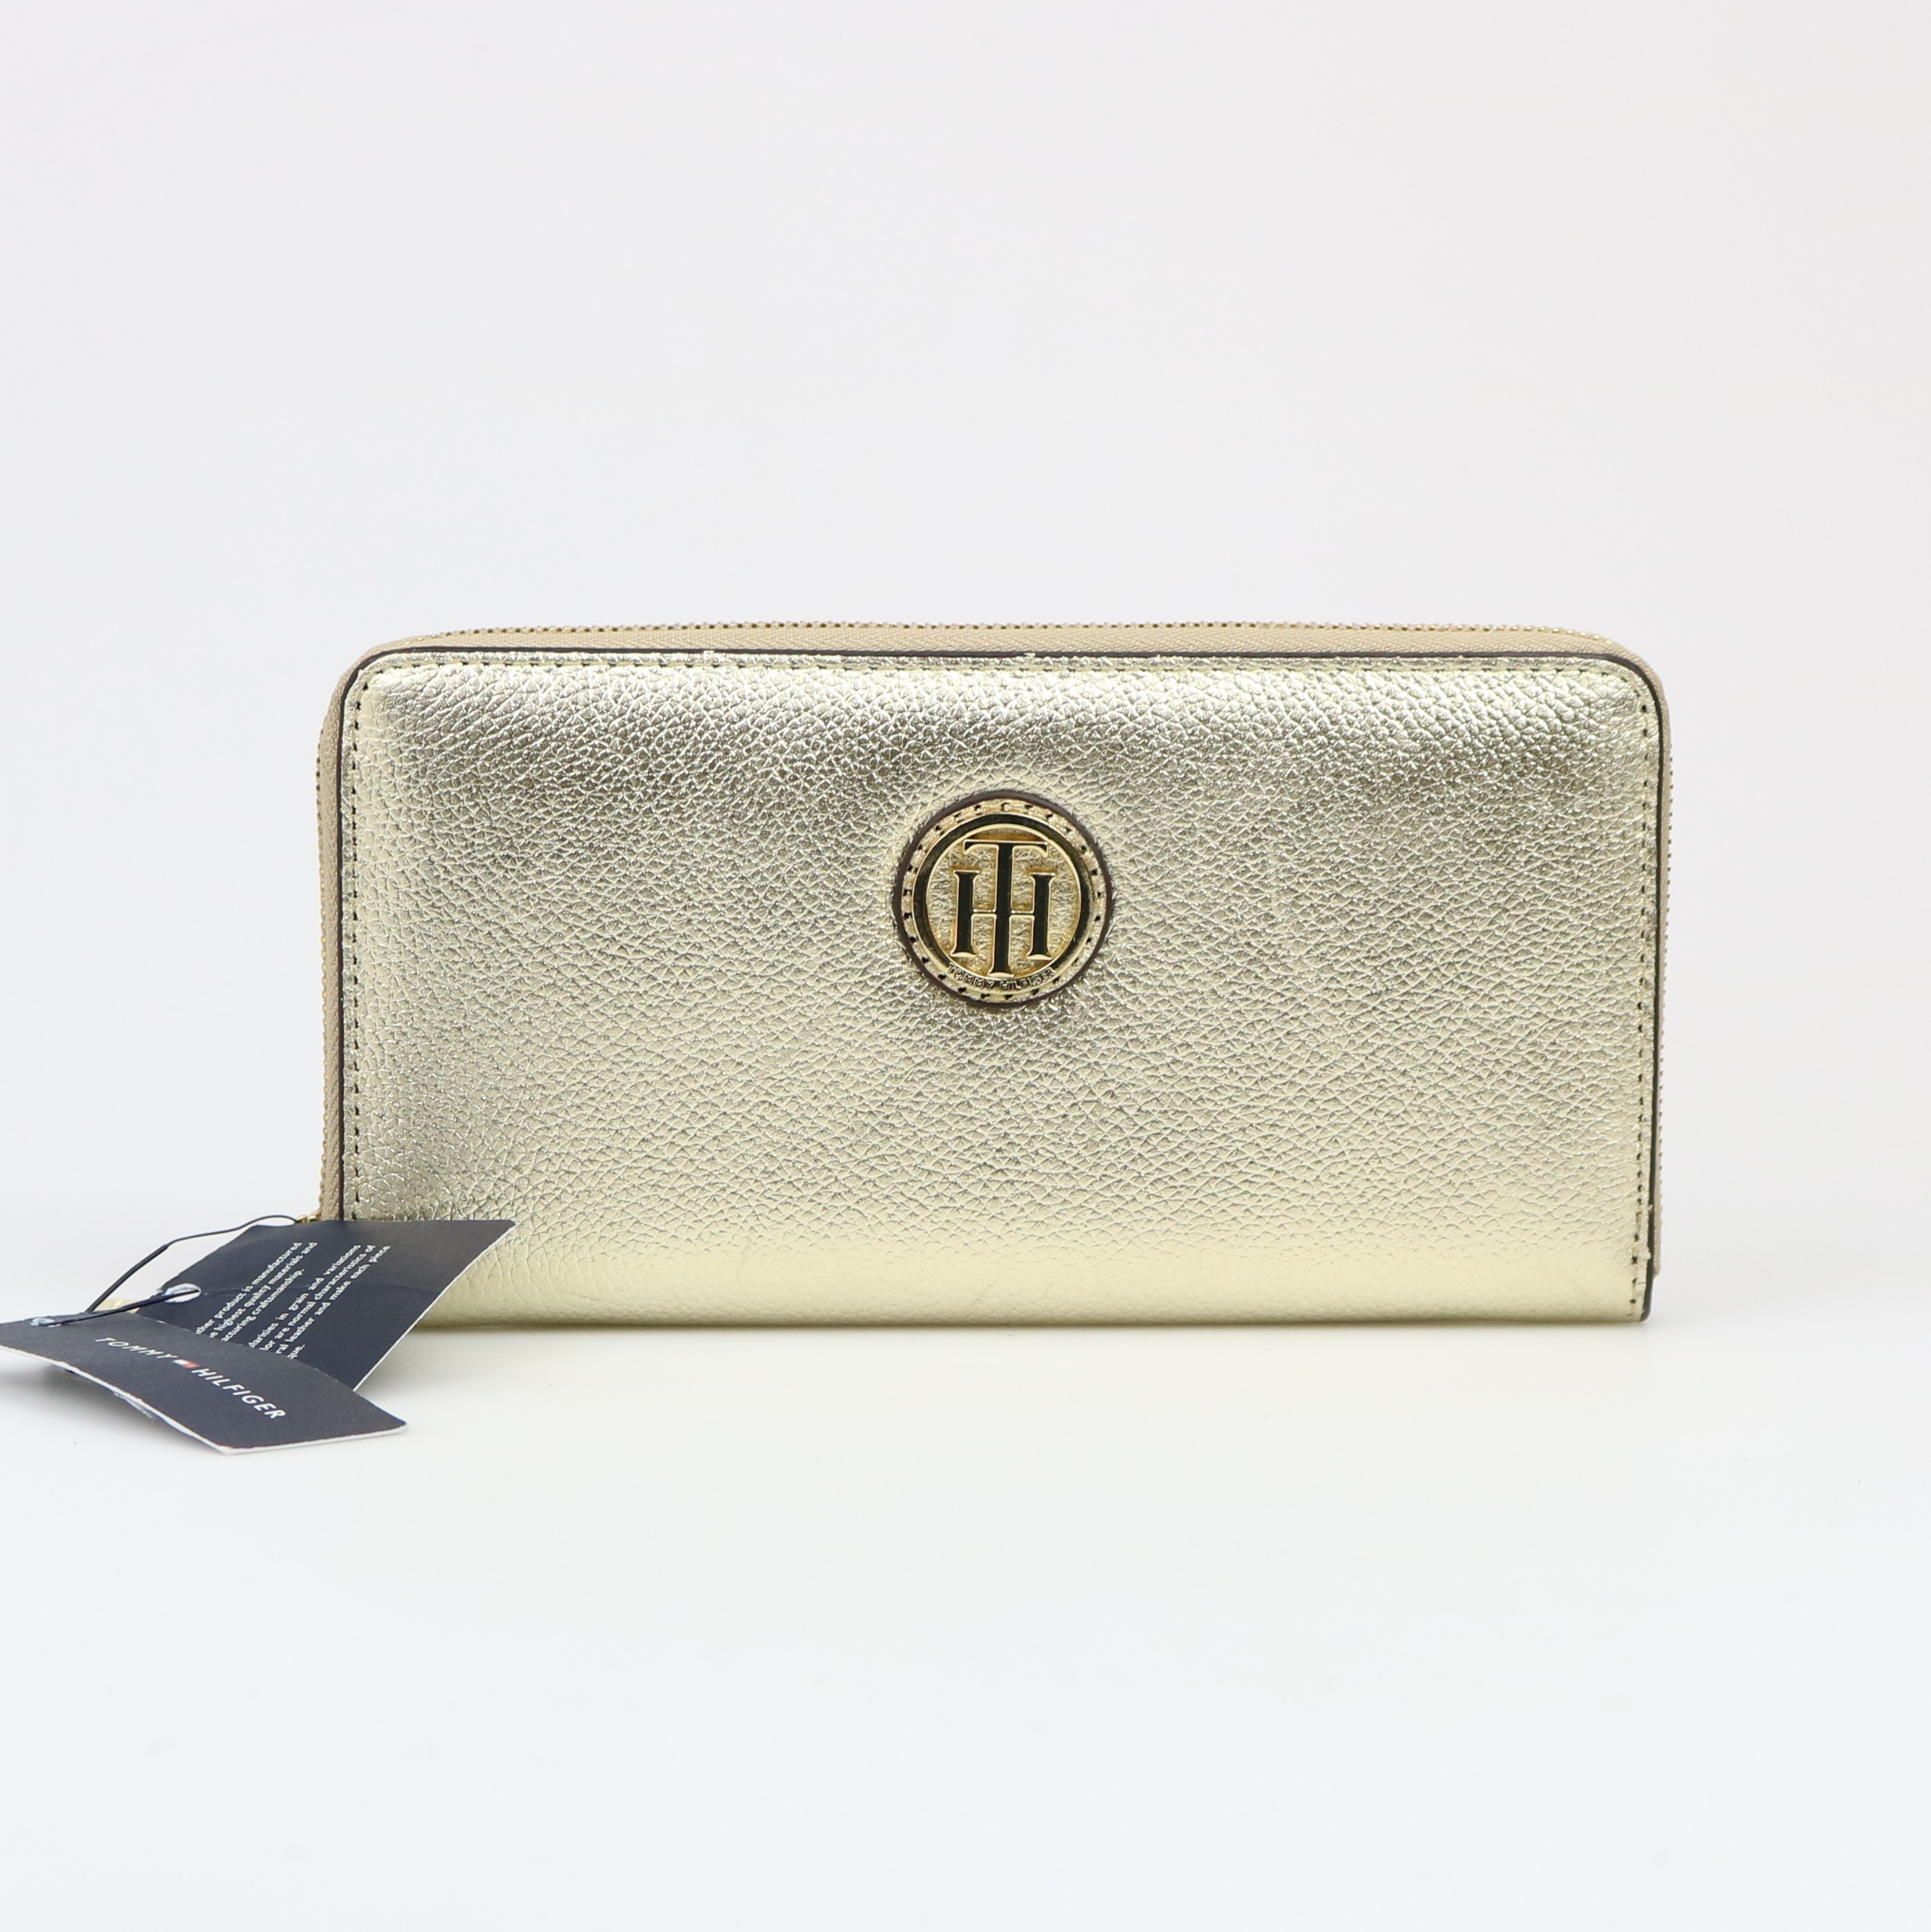 fba834be10ce Image is loading Tommy-Hilfiger-Signature-Large-Zip-Around-Gold-Wallet